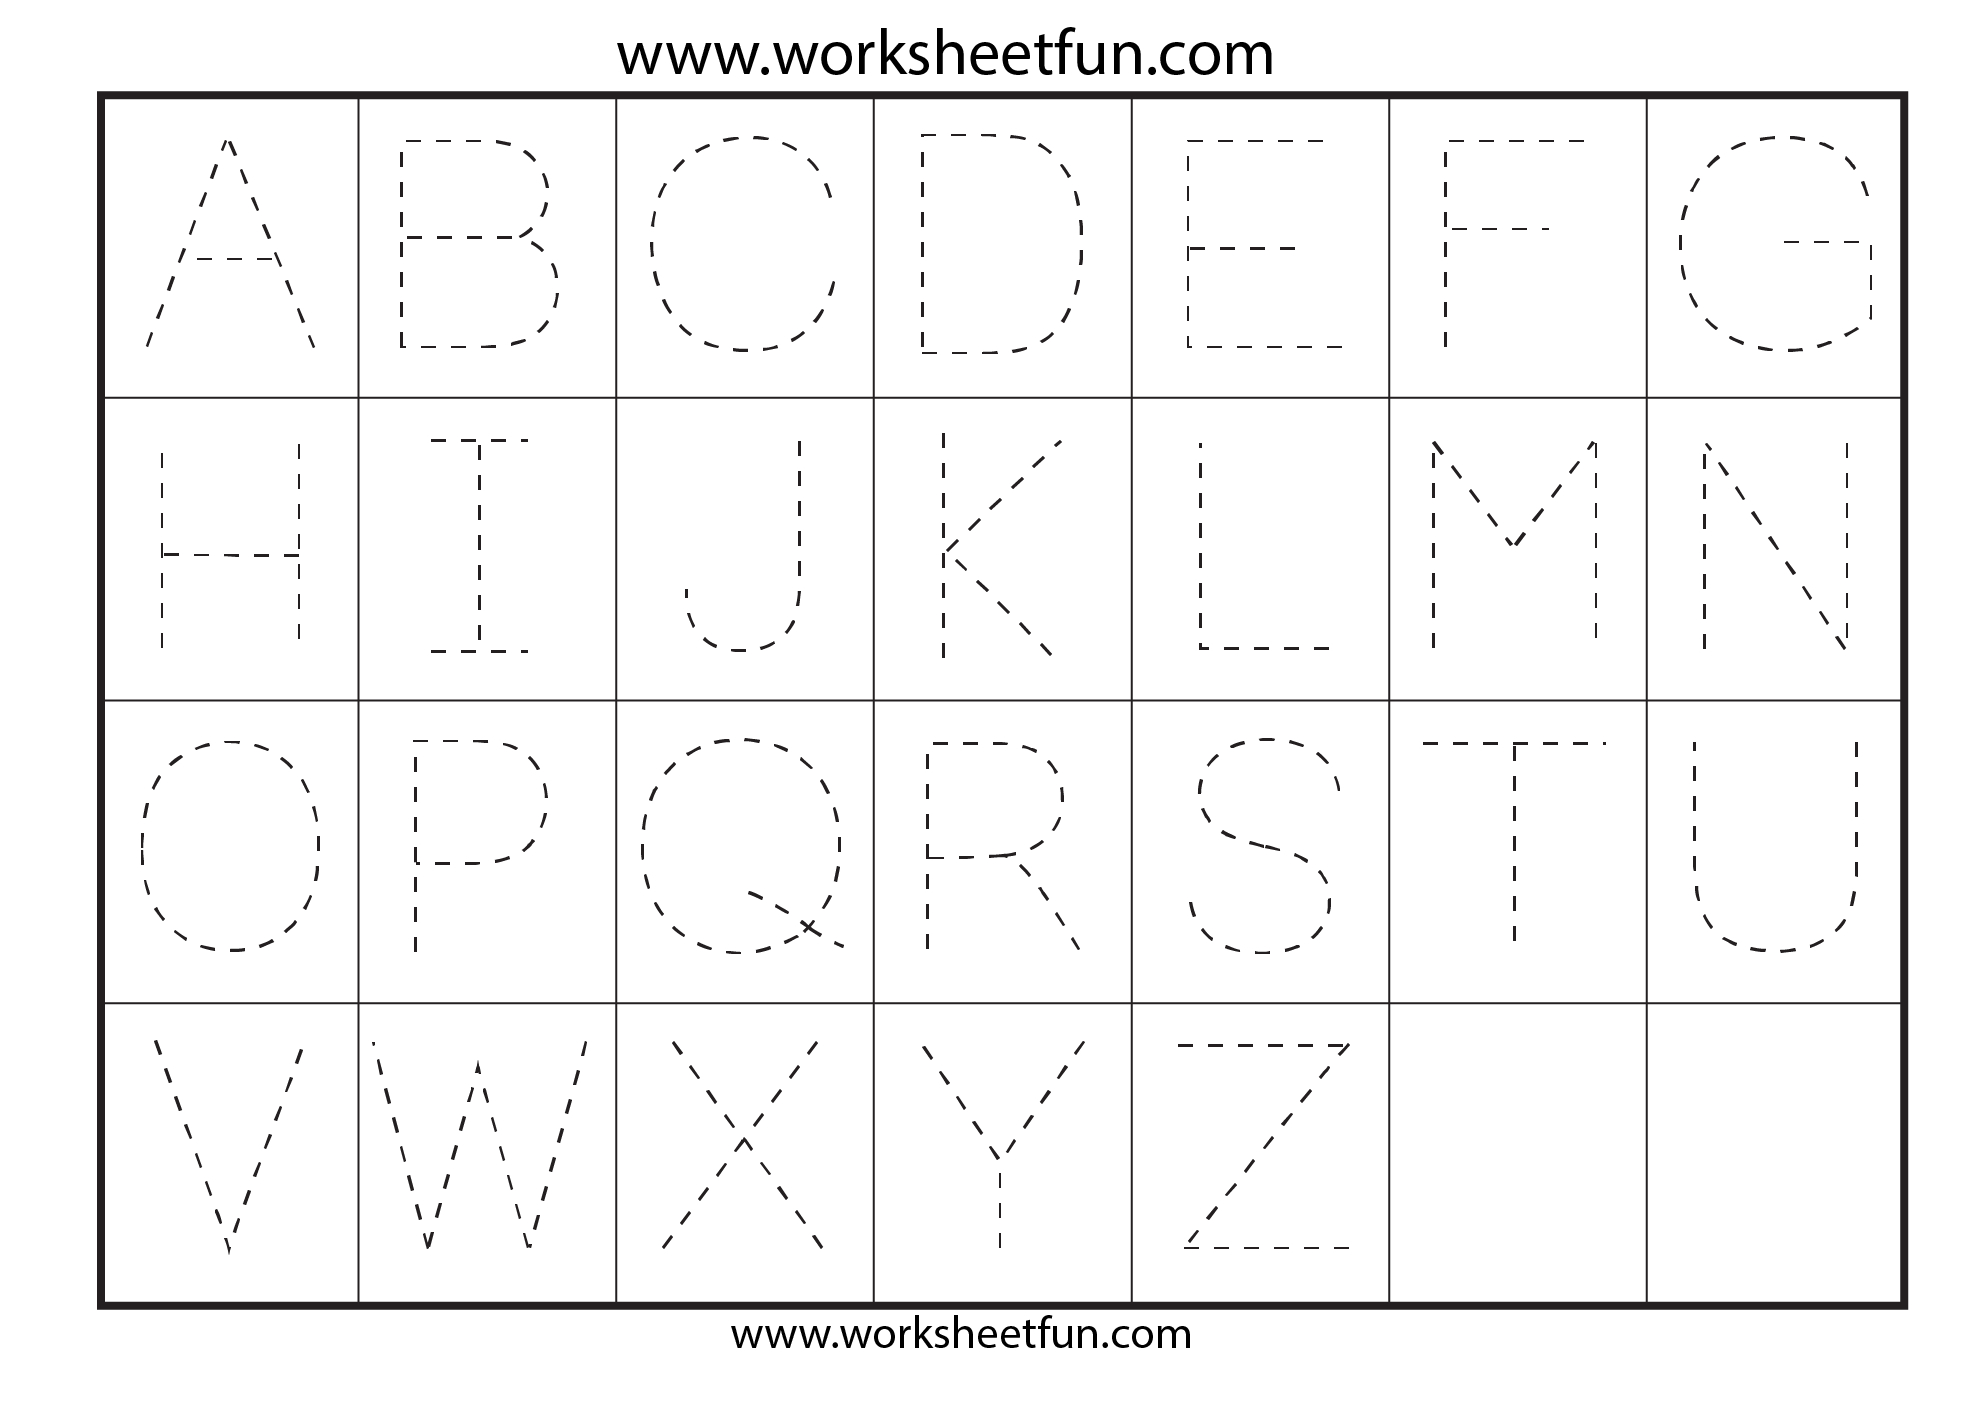 Free Tracing Letters Worksheet | Printable Worksheets And regarding Tracing Letters Worksheets Free Printable